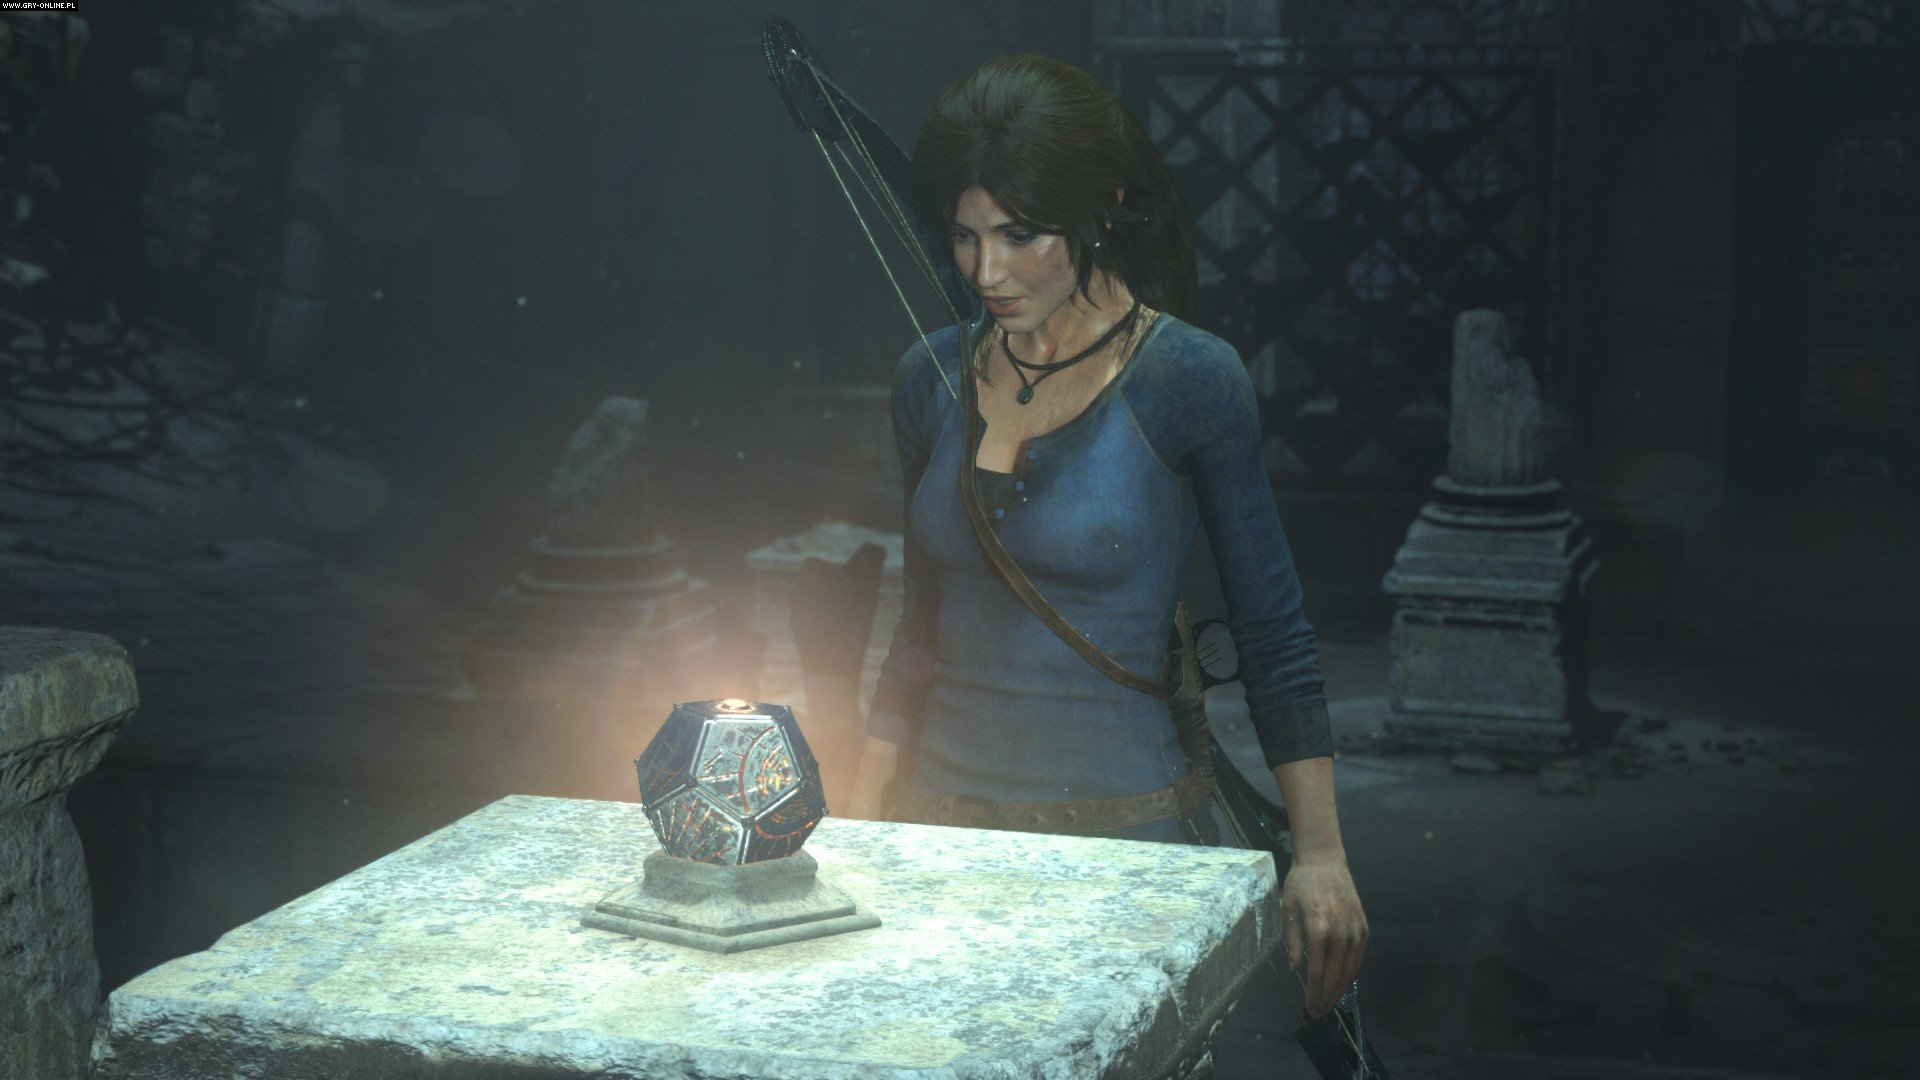 Rise of the Tomb Raider PC, XONE Games Image 37/126, Crystal Dynamics, Square-Enix / Eidos